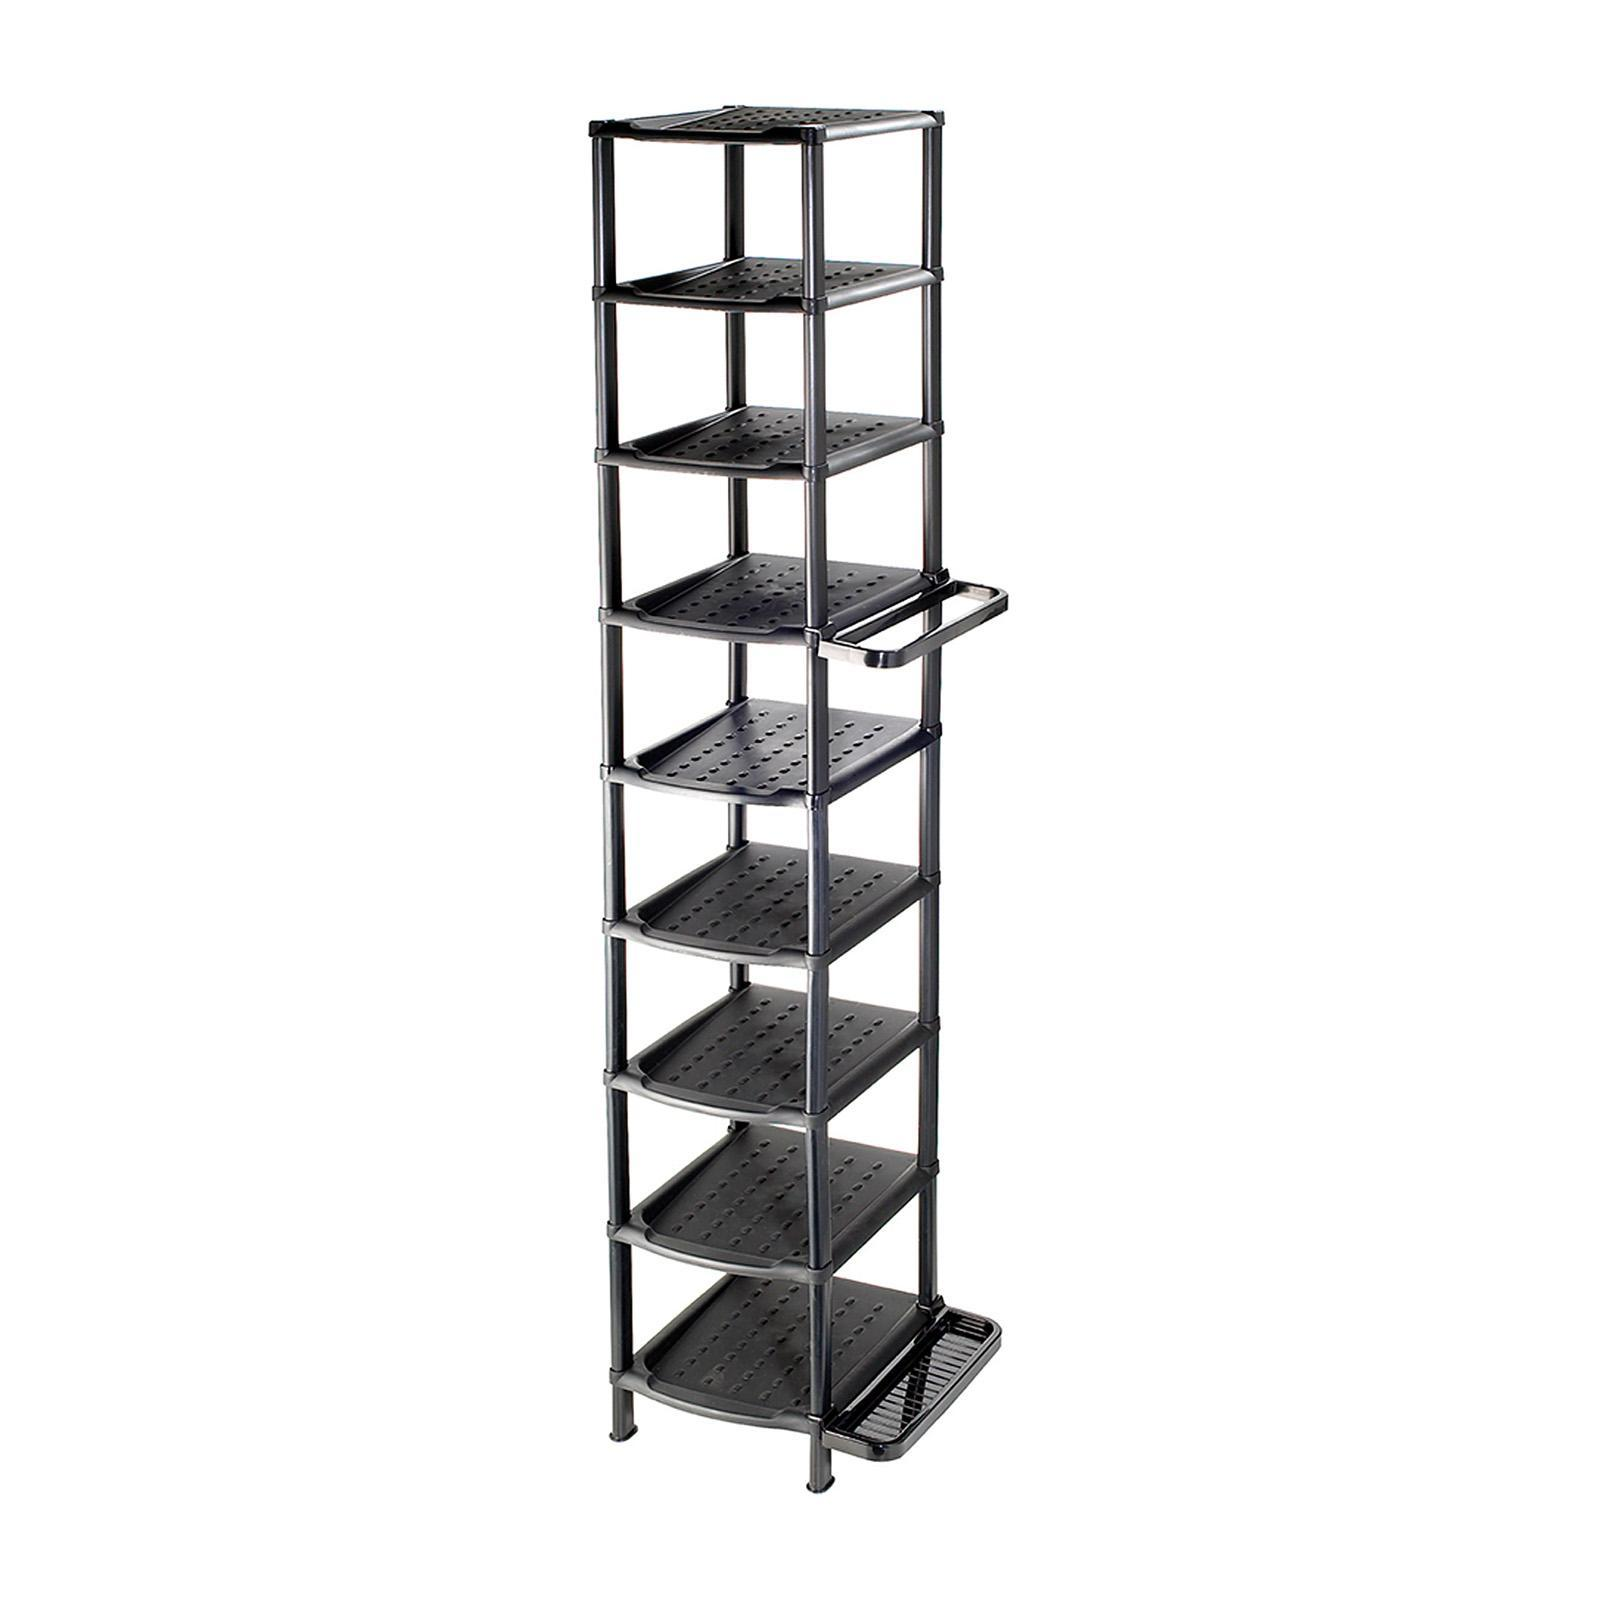 ALGO Multi Shoe Rack 9 Tier W/ Umbrella Holder